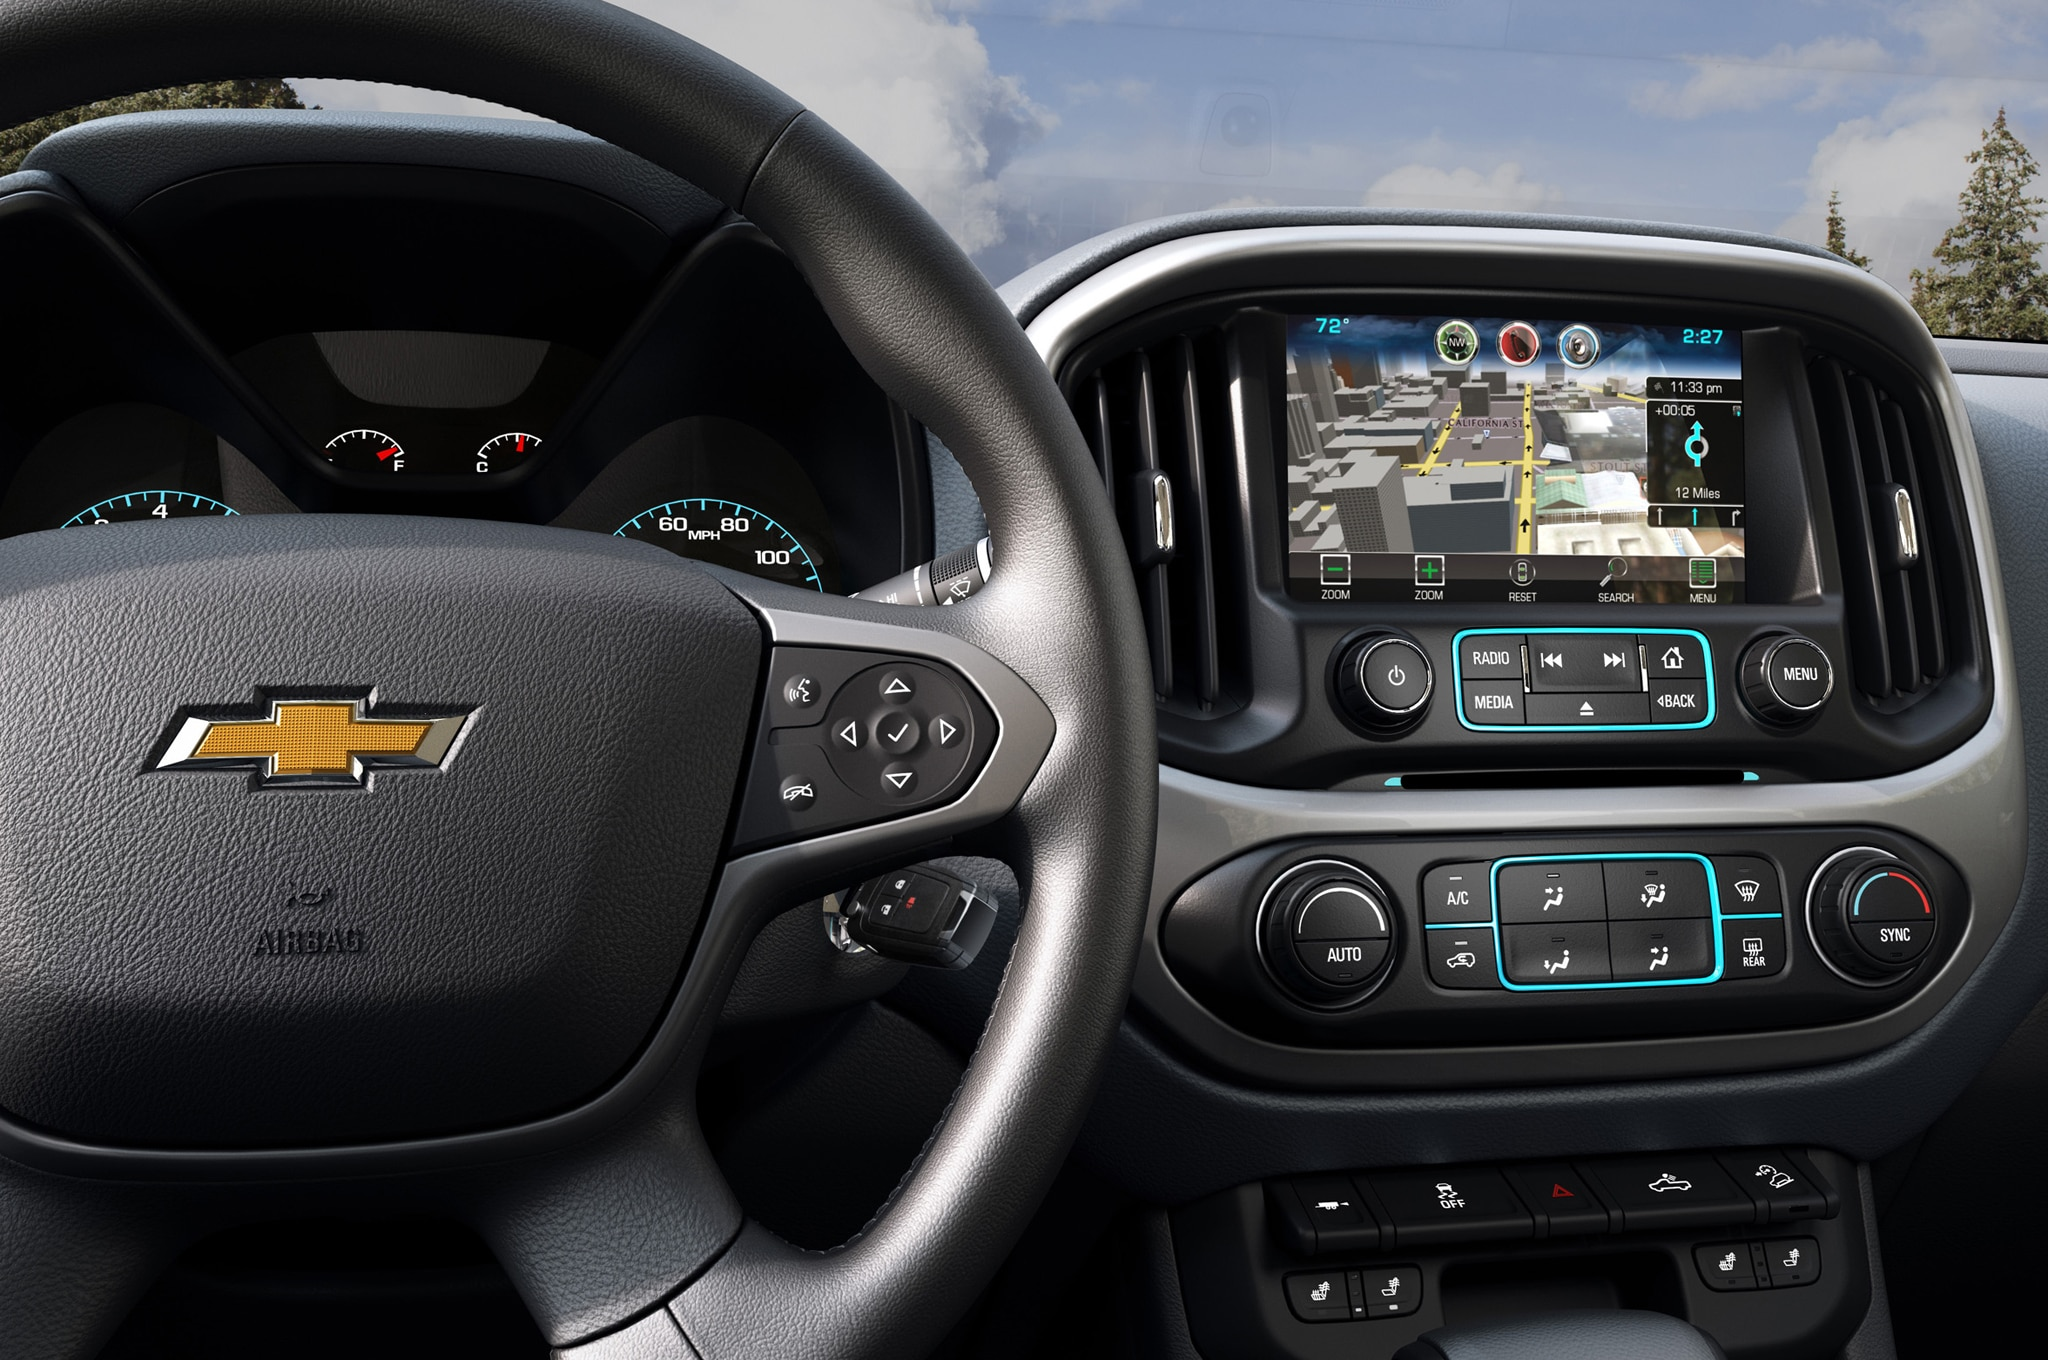 2015 Chevrolet Colorado steering wheel and radio